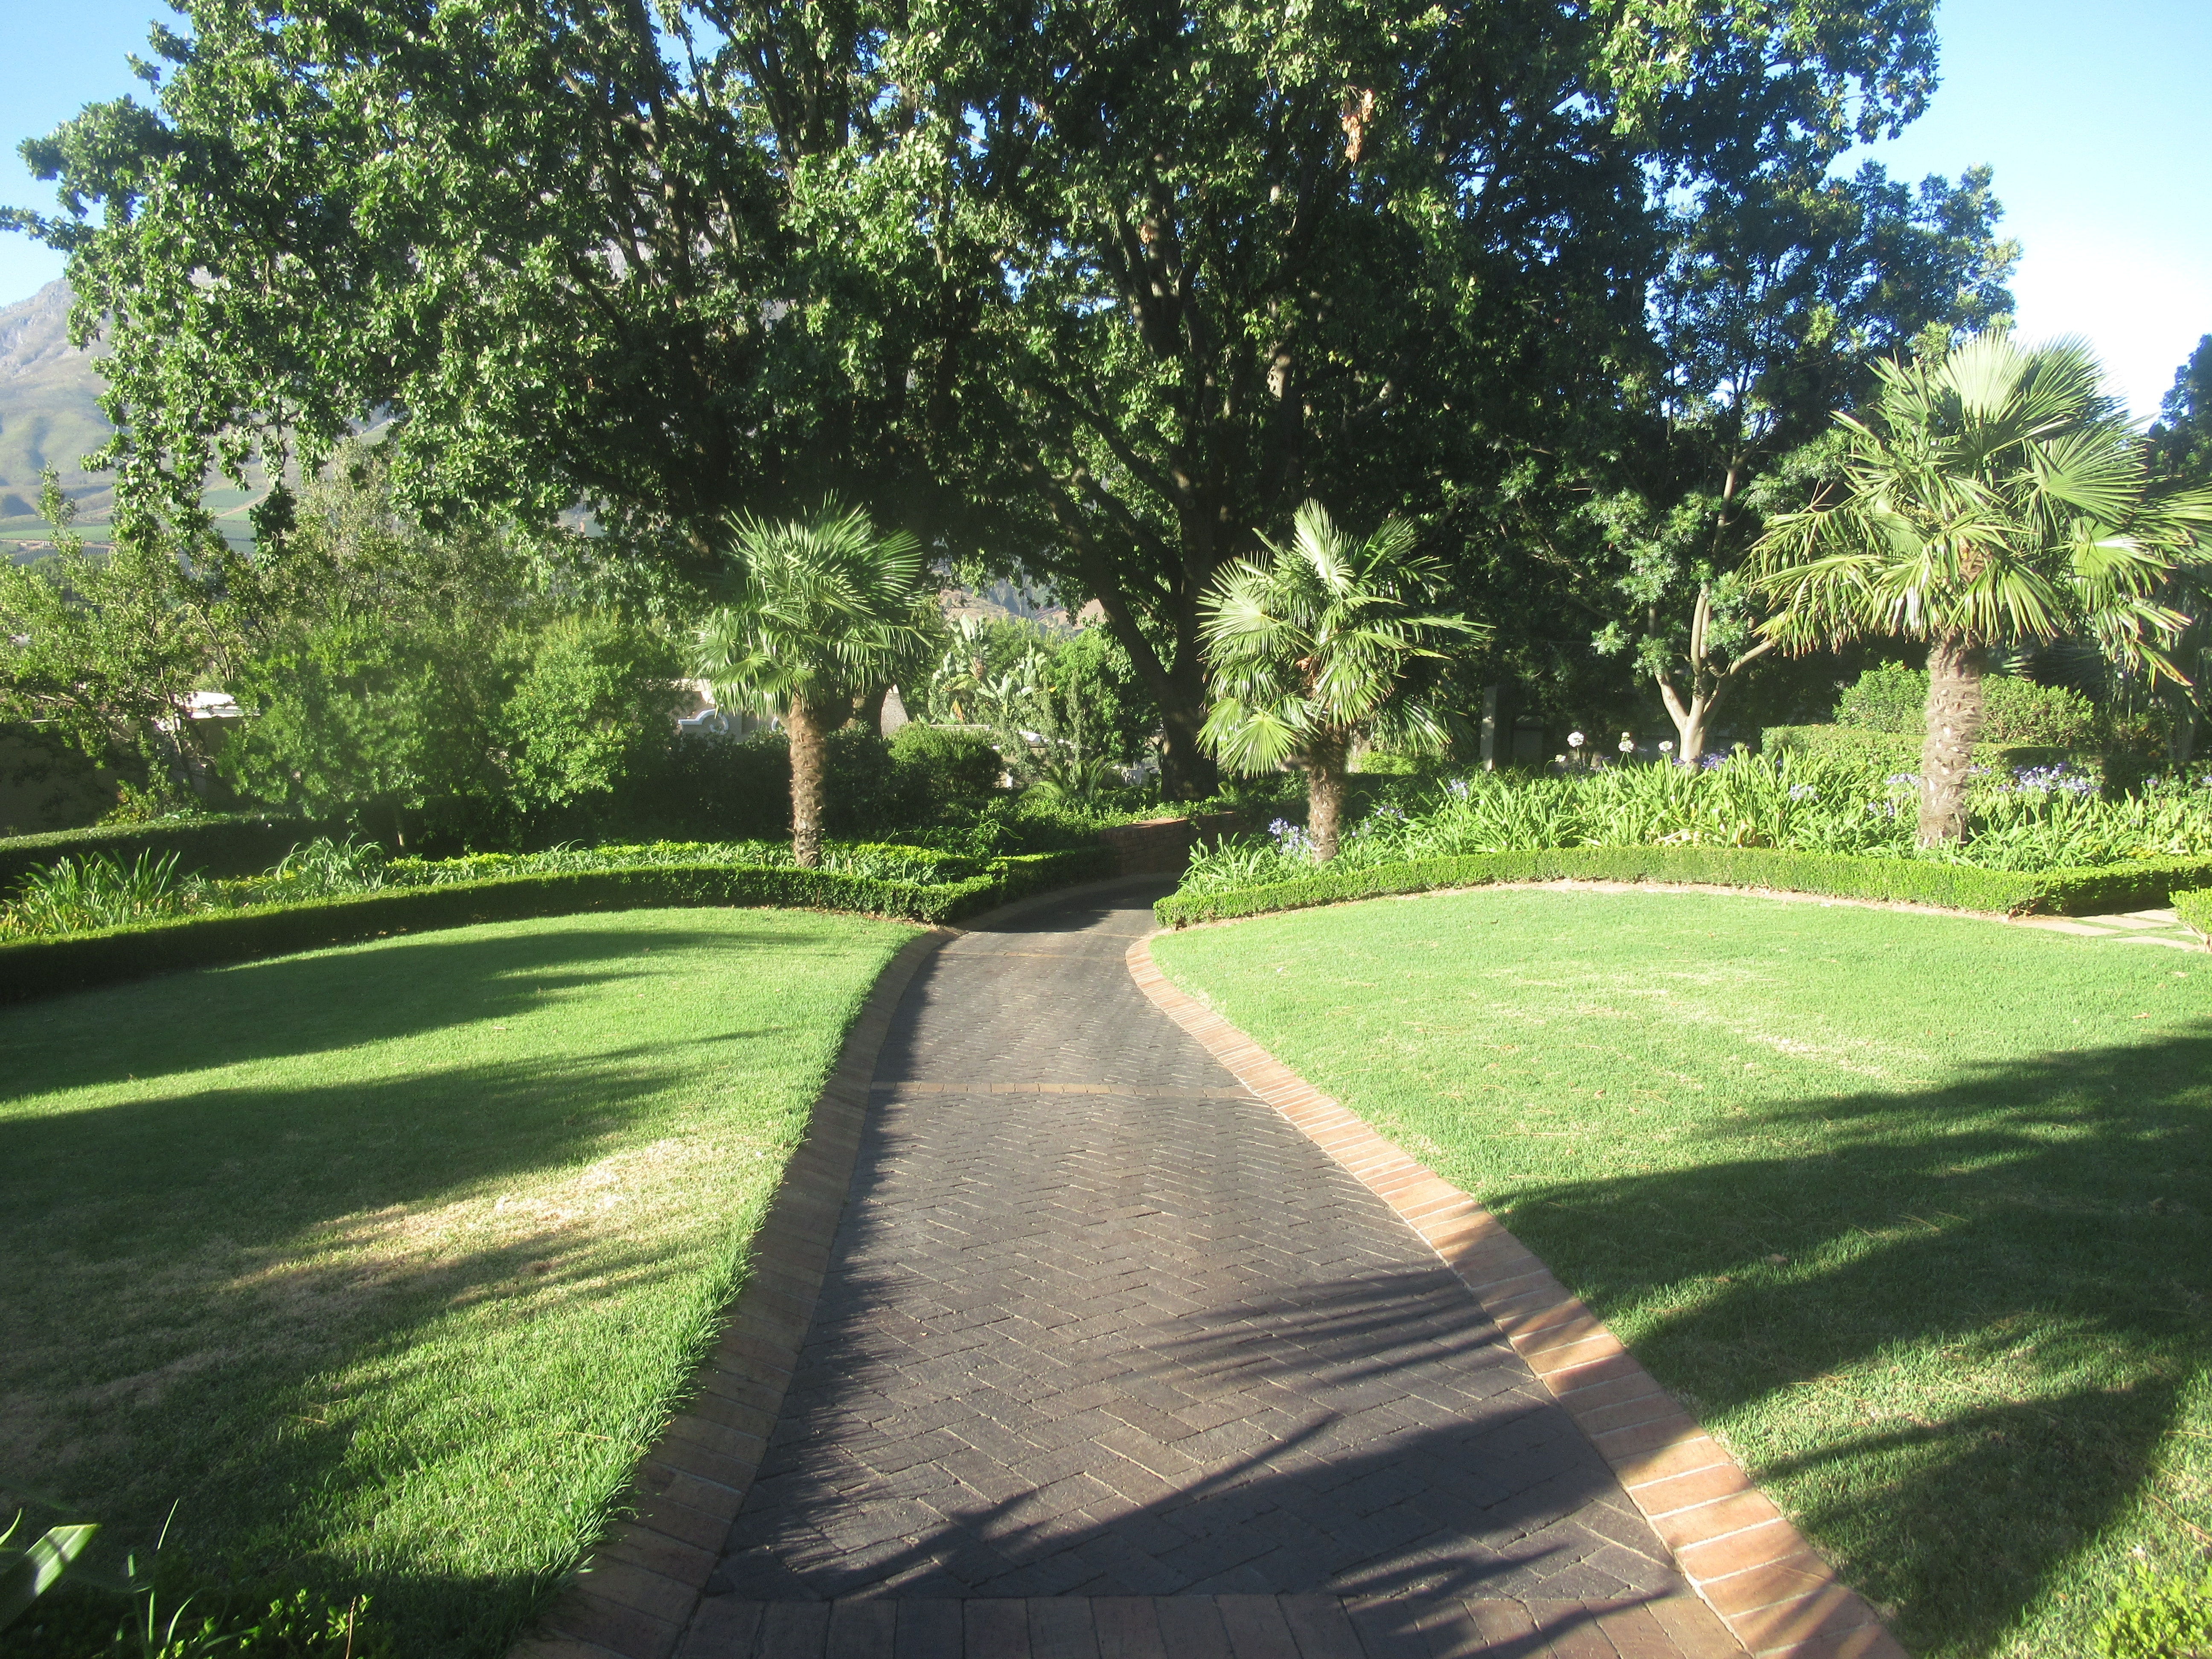 Road in the green garden photo